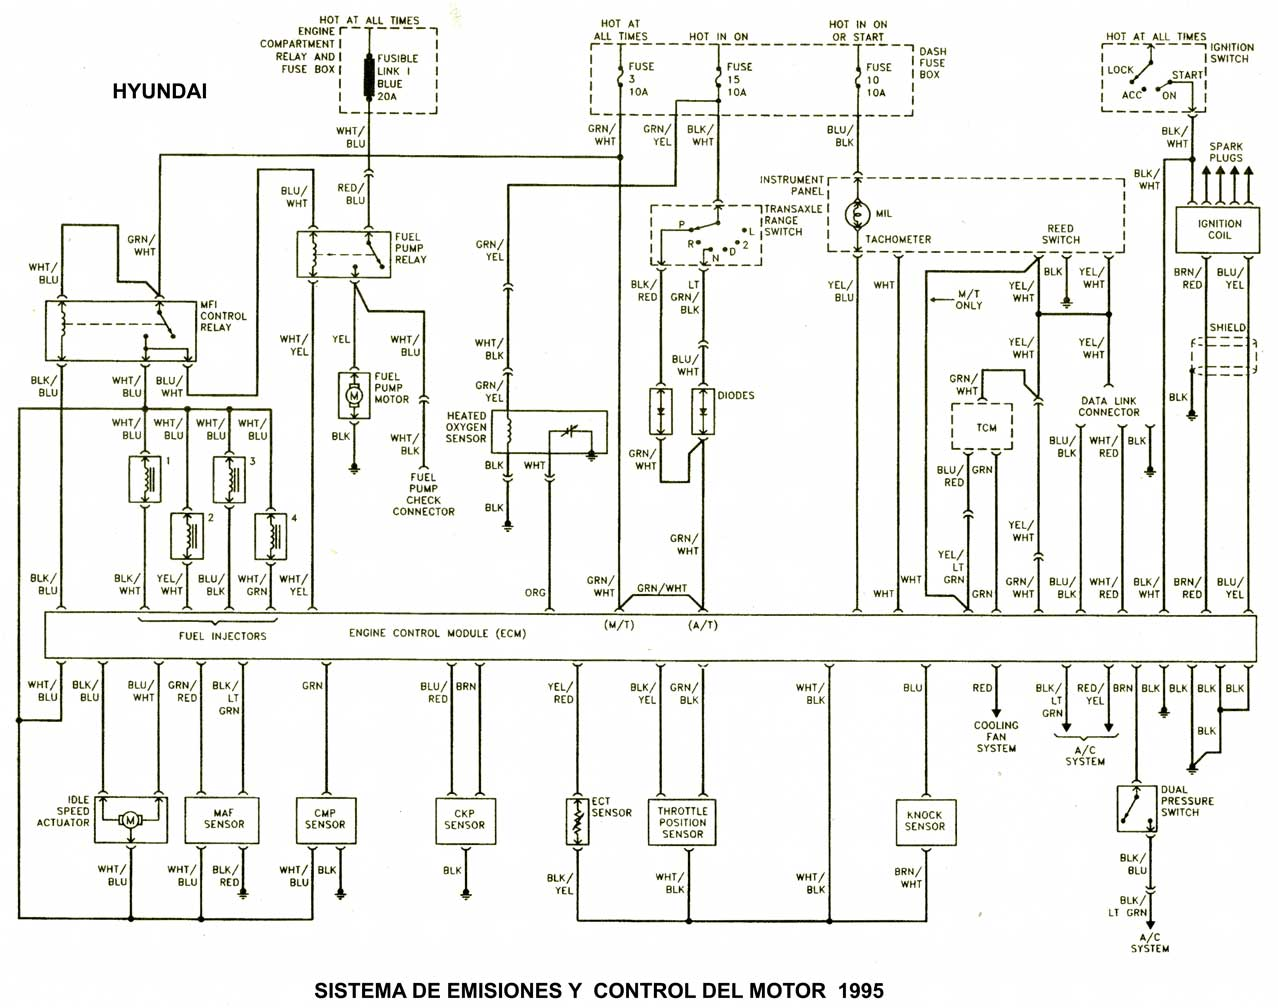 dhyundai9 1989 gmc sierra fuse box diagram 1989 gmc sierra interior wiring 2001 gmc sierra fuse box diagram at bakdesigns.co